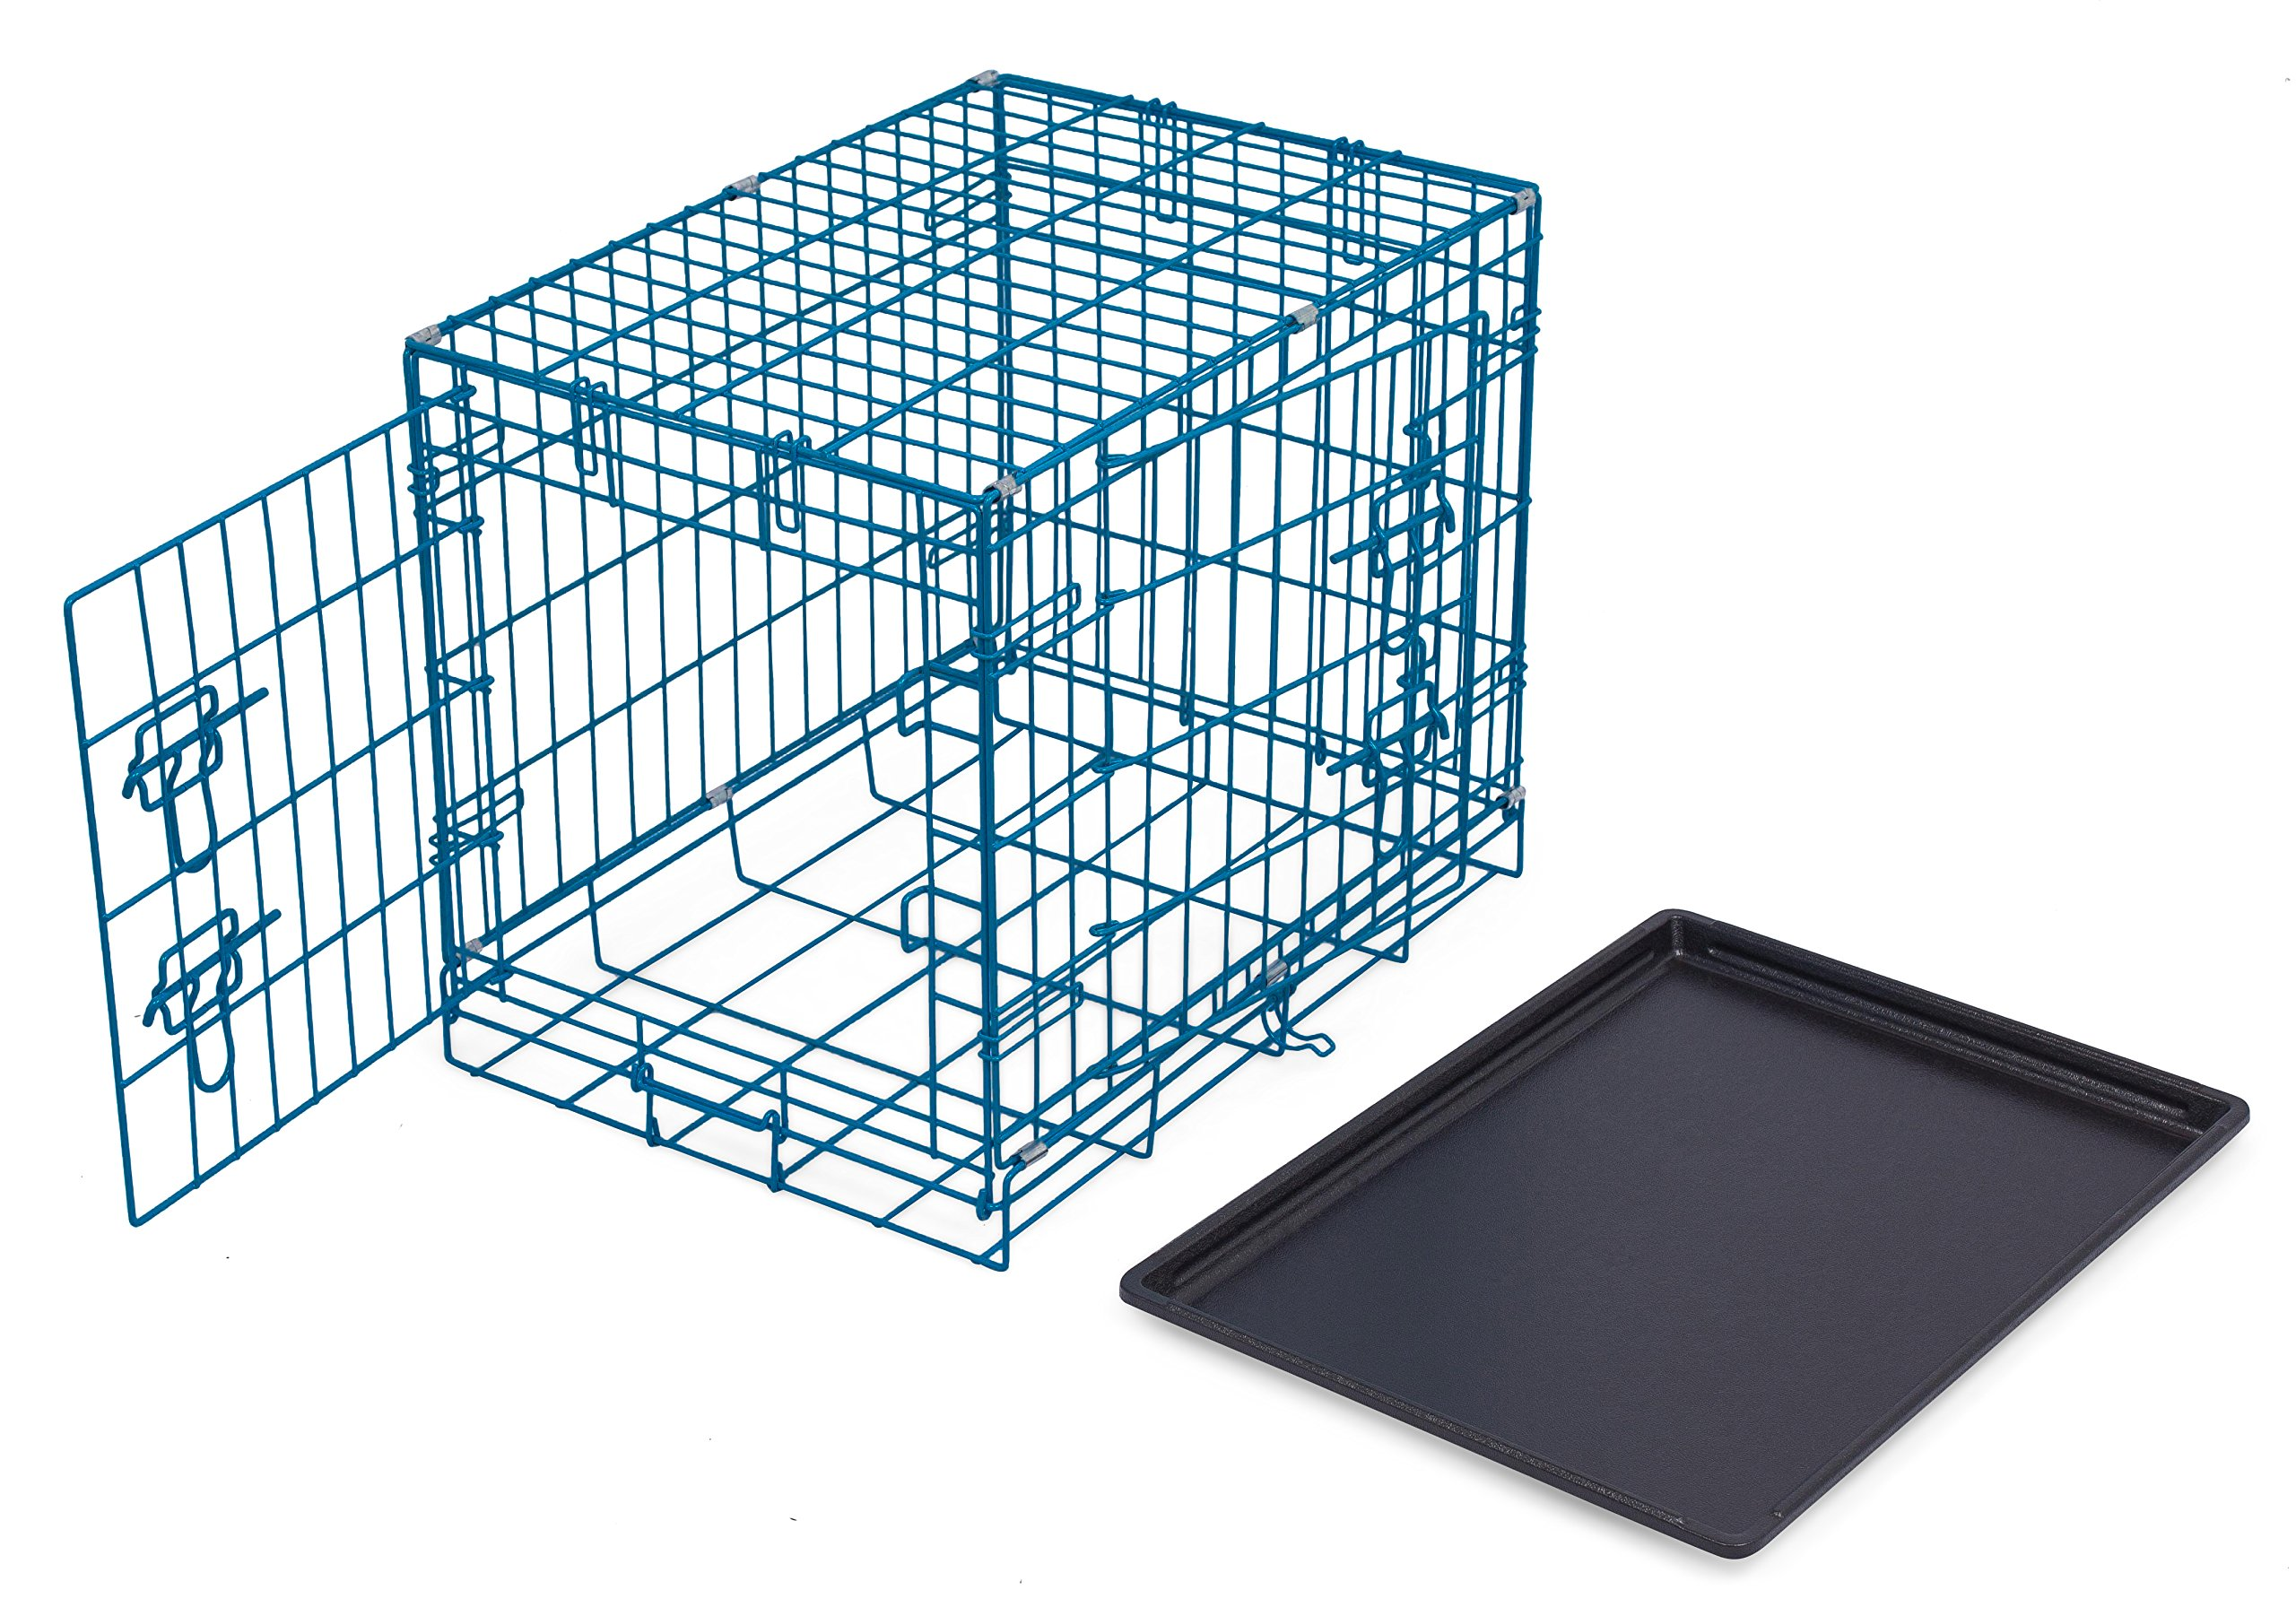 Internet's Best Double Door Steel Crates Collapsible and Foldable Wire Dog Kennel, 24 Inch (Small), Blue by Internet's Best (Image #5)